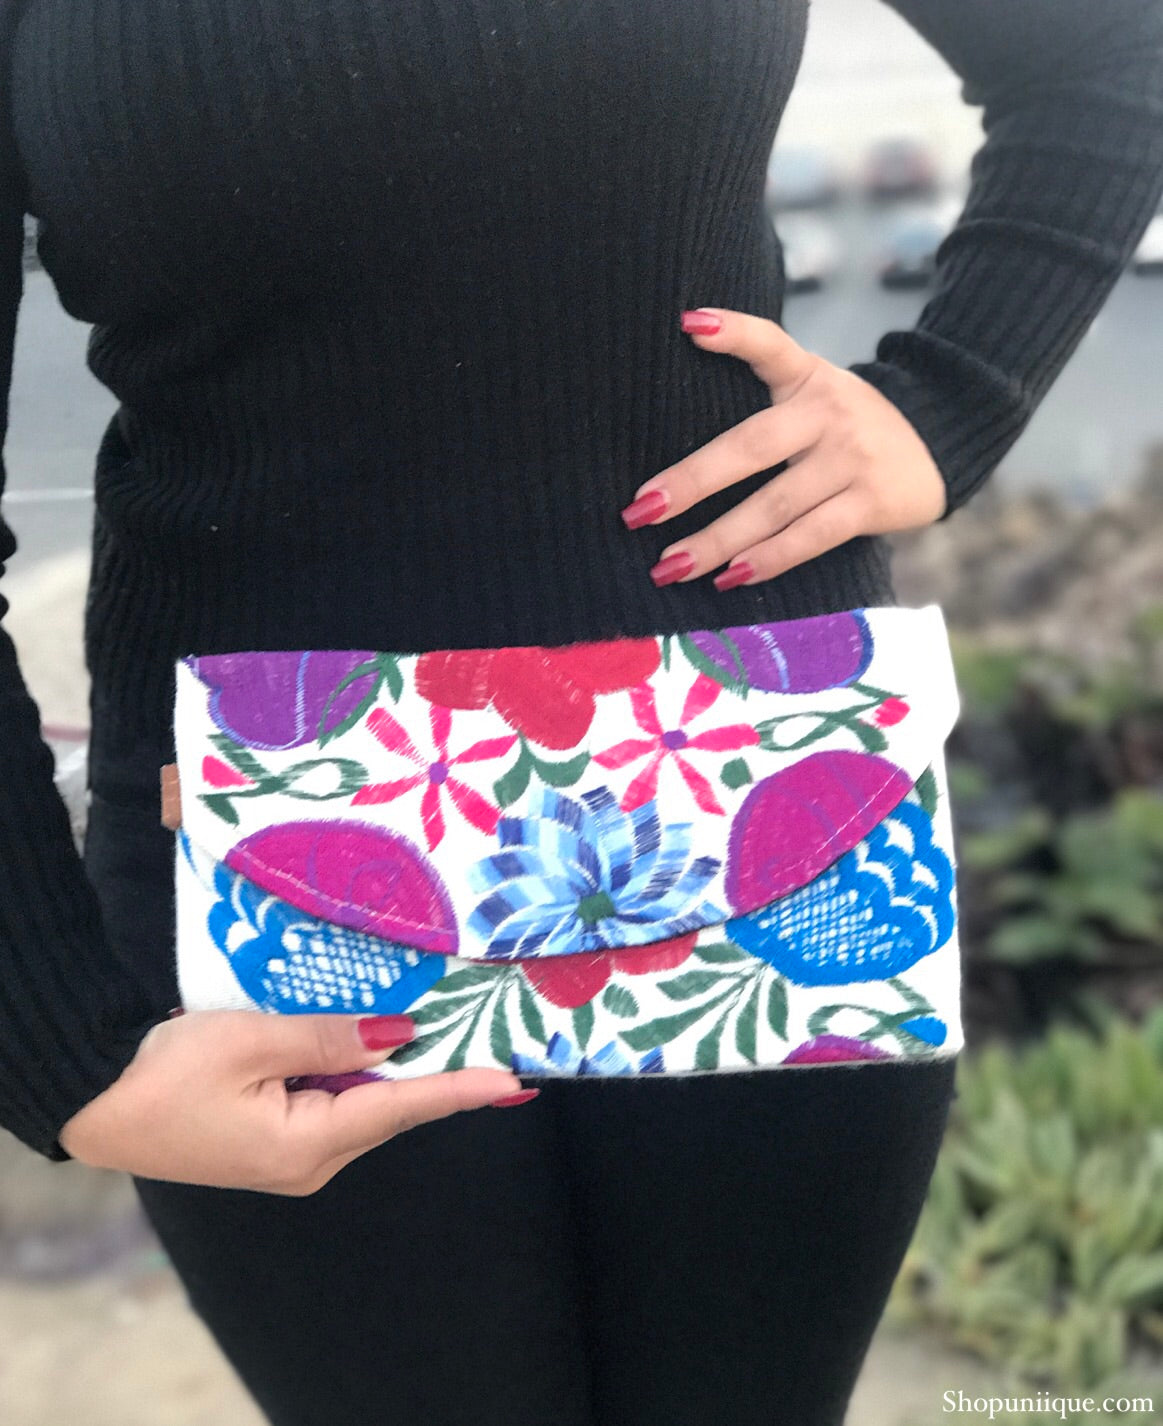 Small White Floral Clutch